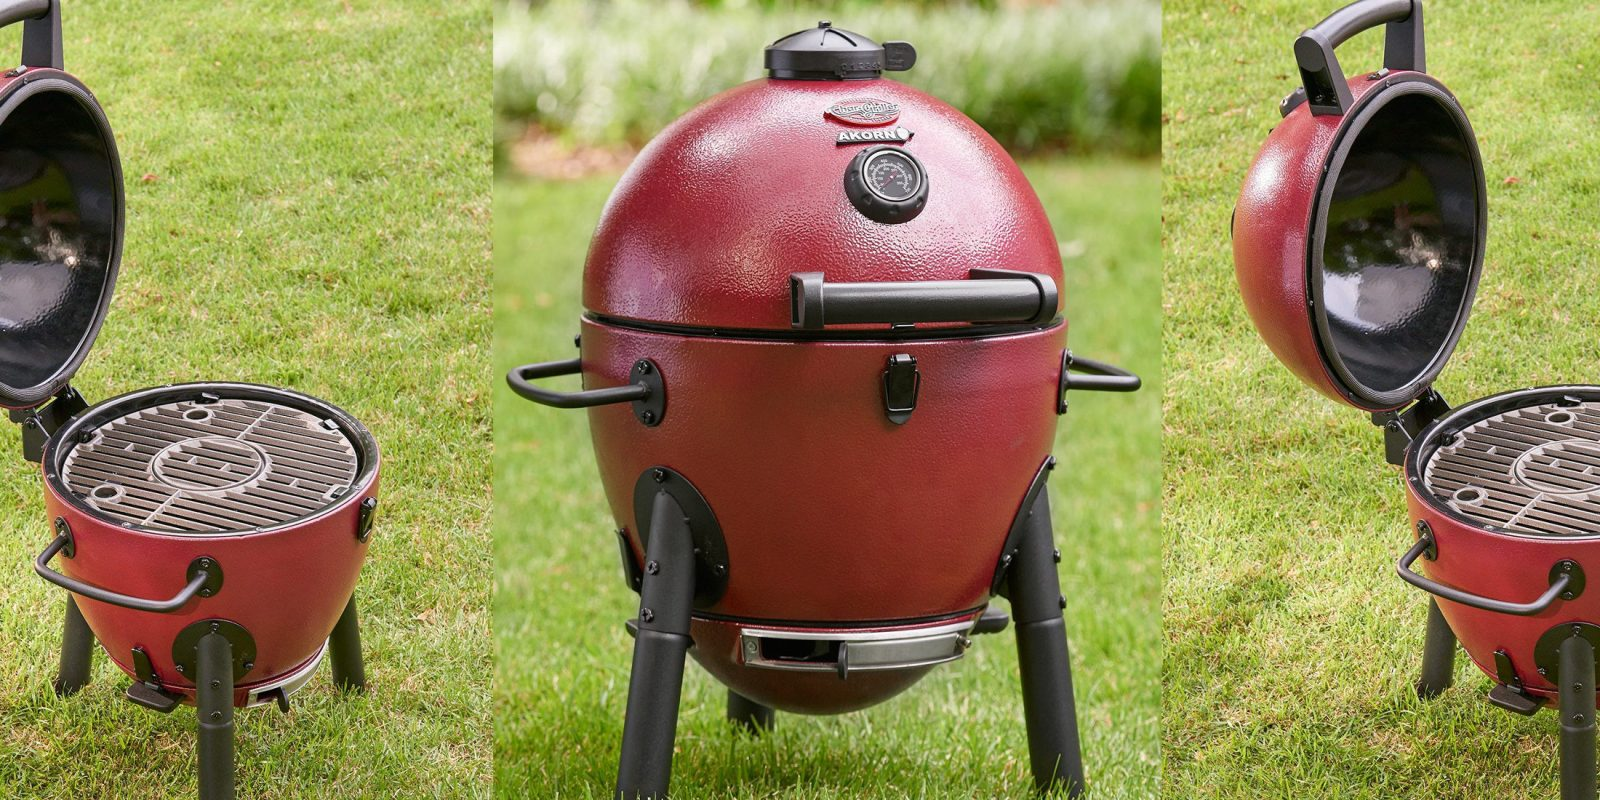 Char-Griller Akorn Jr. Kamado Kooker Grill down to just $109 today ...